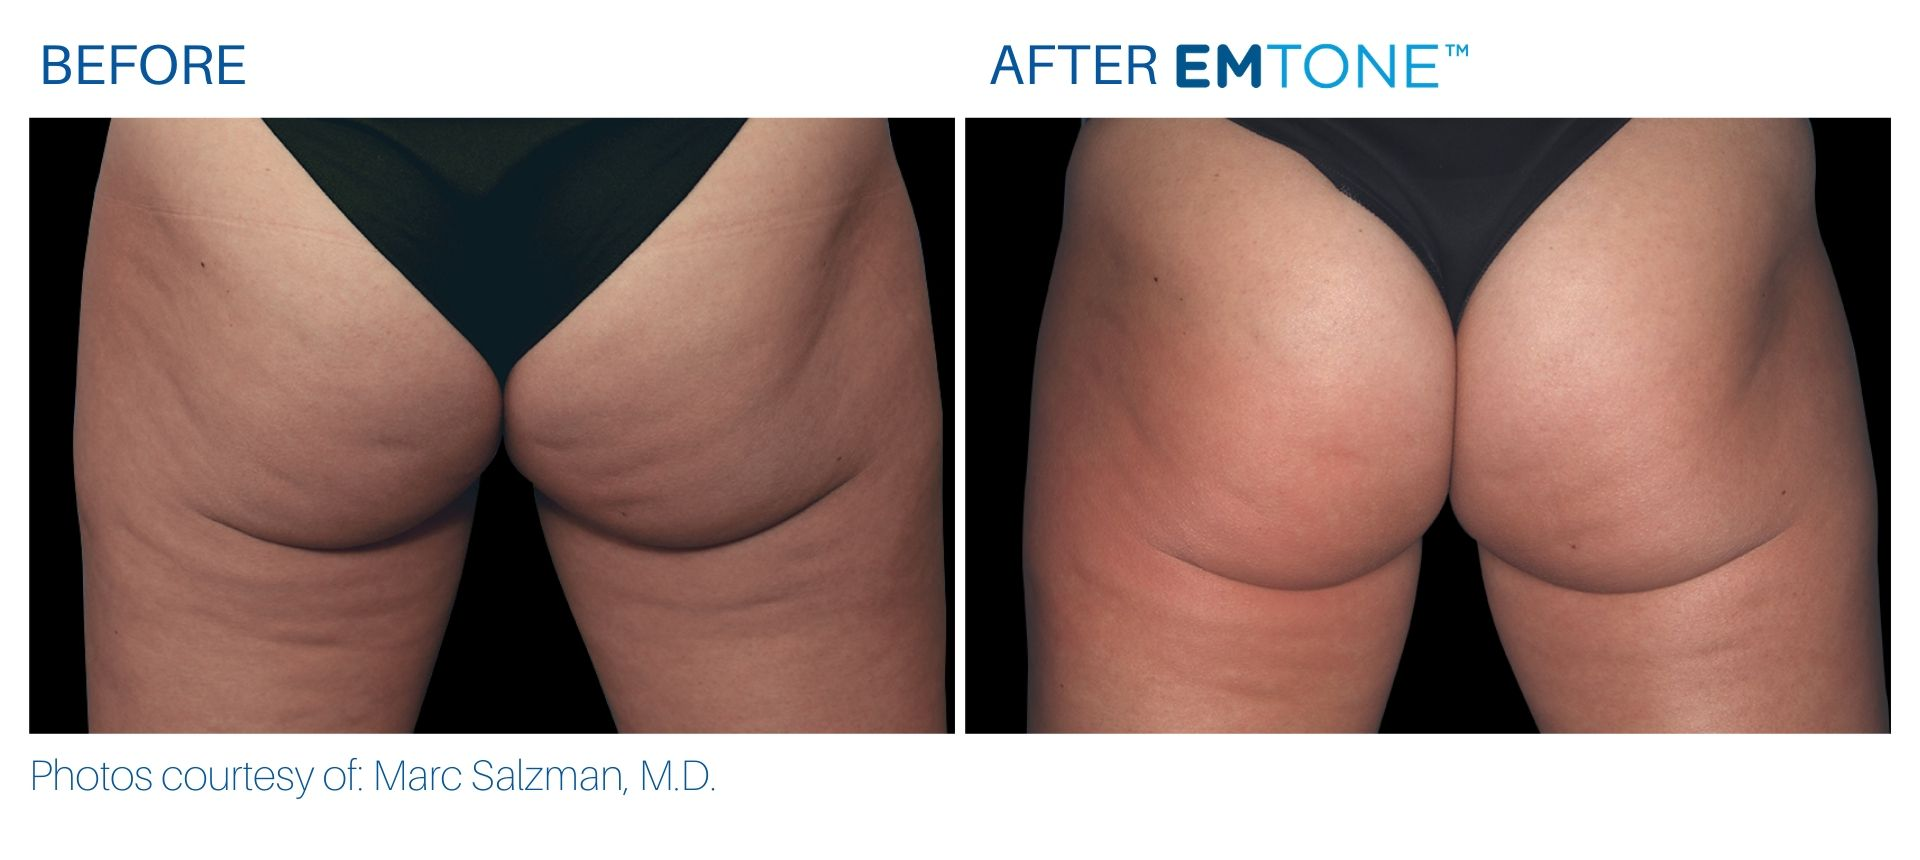 Emtone buttocks before and after result BodyMorphMD